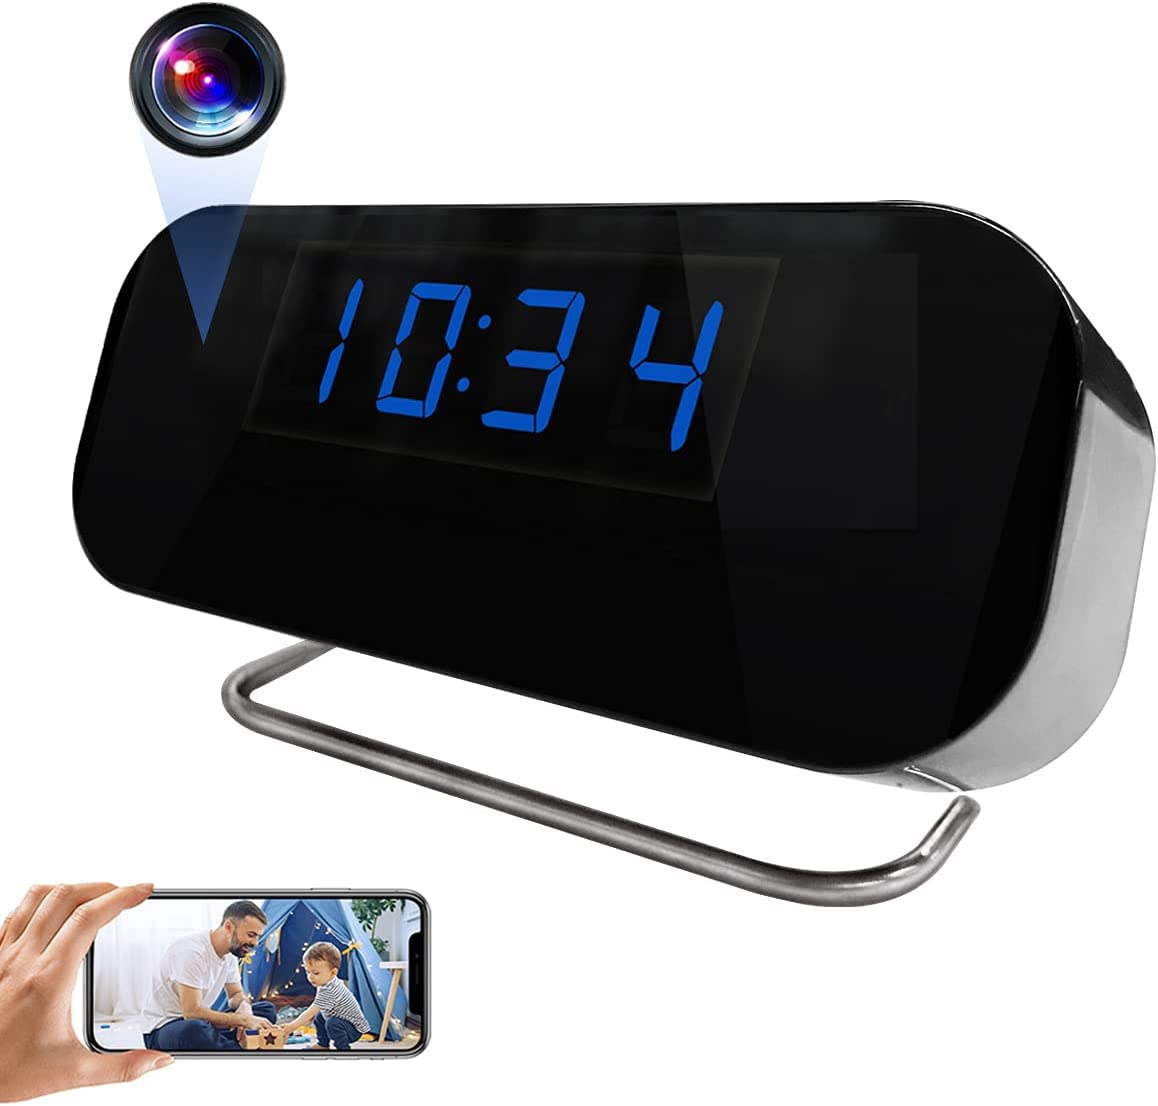 Hidden Spy Camera HD 1080P WiFi Alarm Clock Camera Wireless Security Covert Nanny Cam with App Live Streaming, Loop Recording, Night Vision, Motion Detection Alert for Home and Office